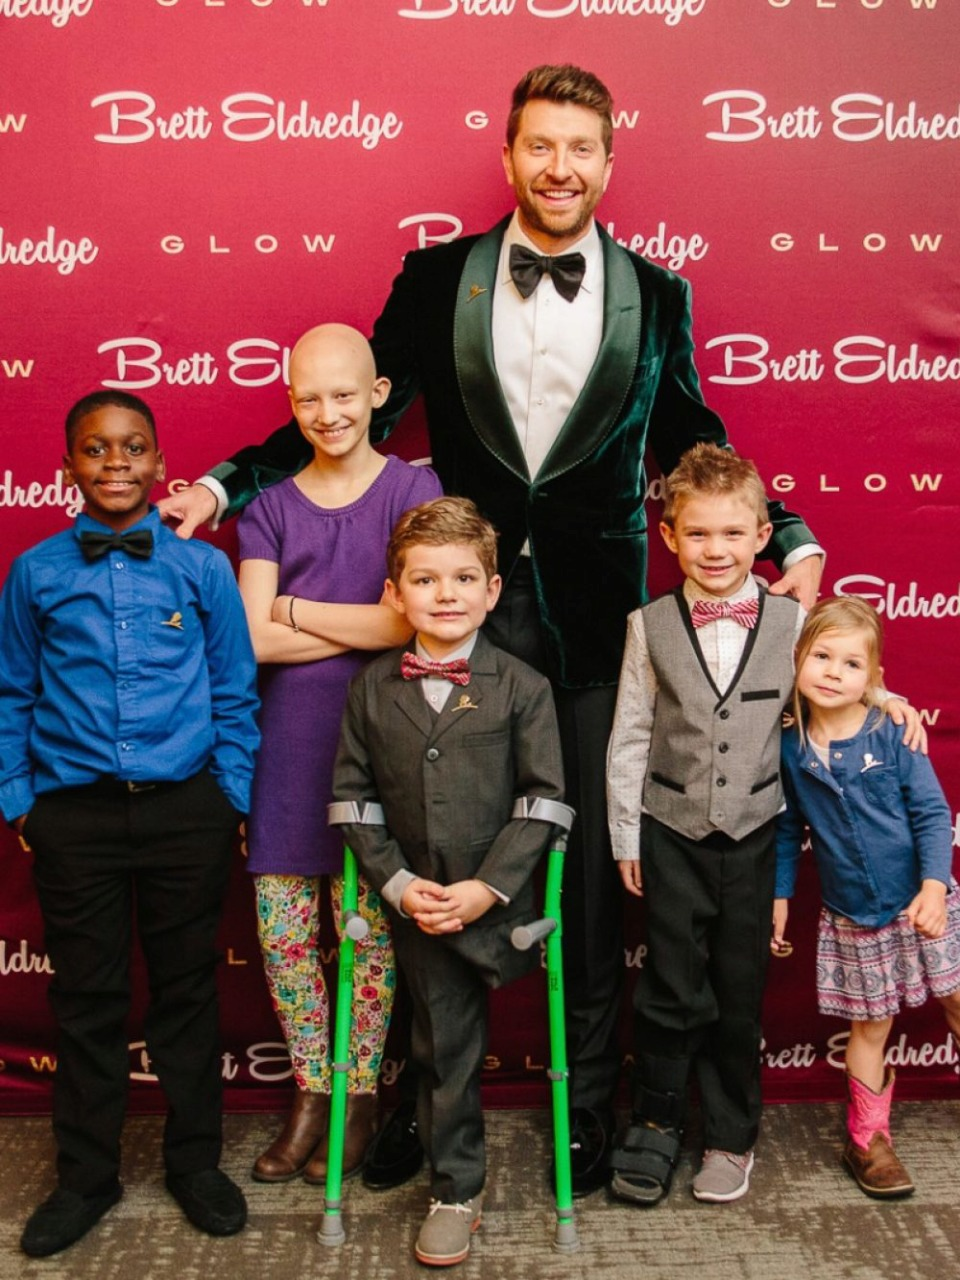 Country music star Brett Eldredge surprised a group of patients by making them his personal guests at a concert earlier this year to commemorate the launch of a partnership between St. Jude Children's Research Hospital and Lyft that enables riders to round up fares to the nearest dollar to support St. Jude's mission. (Courtesy St. Jude)